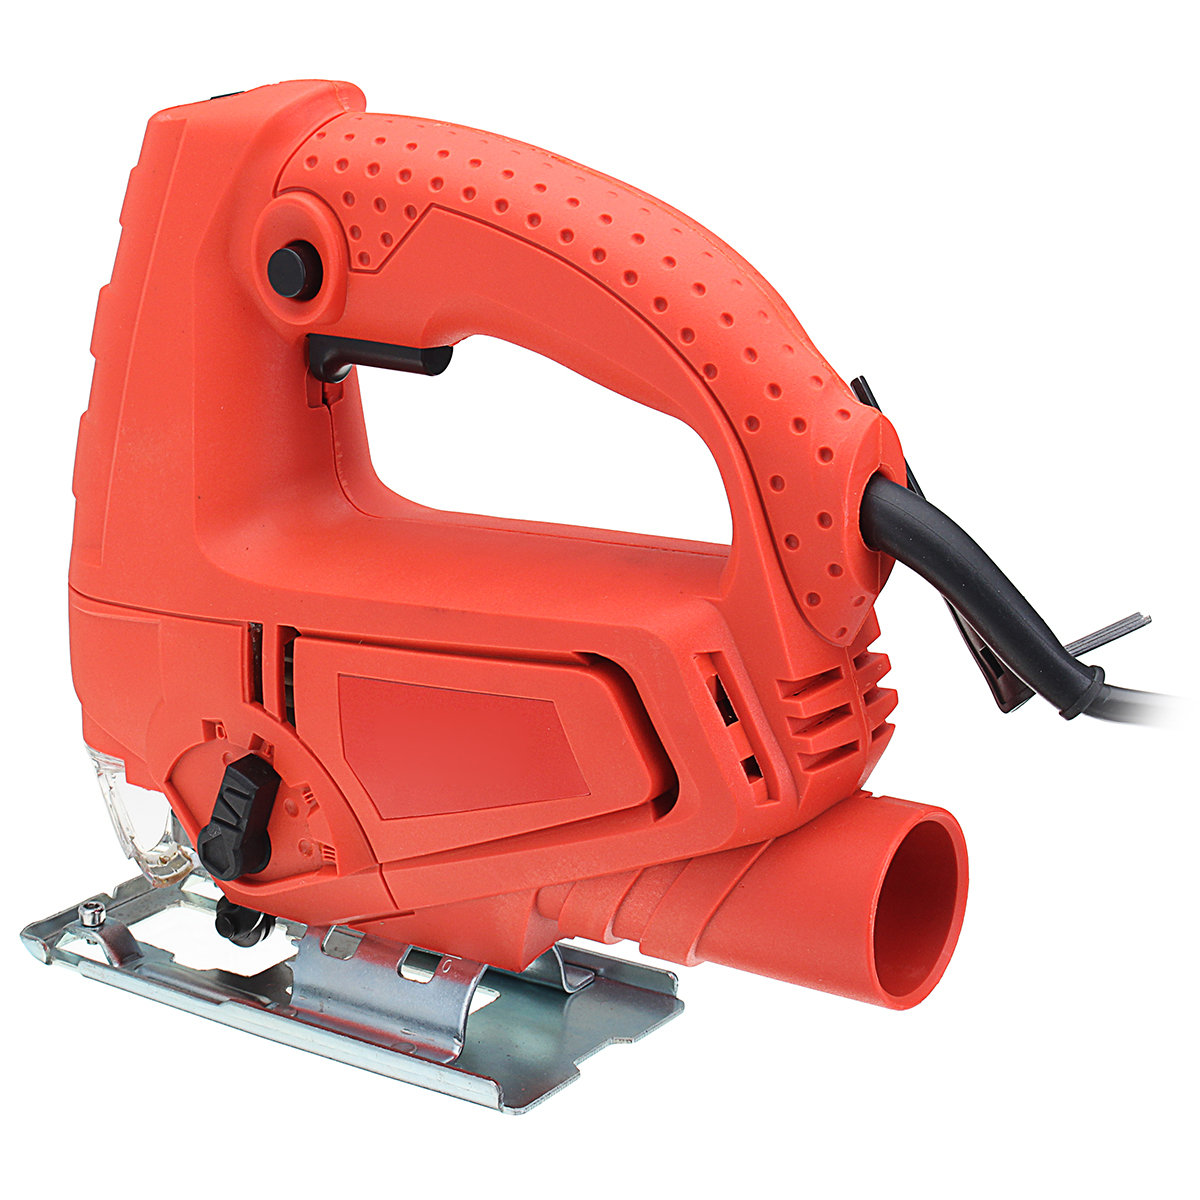 900W 220V Electric Saws Electric Scroll Sweep Saw Kit Wood Work Tools With Saw Blades